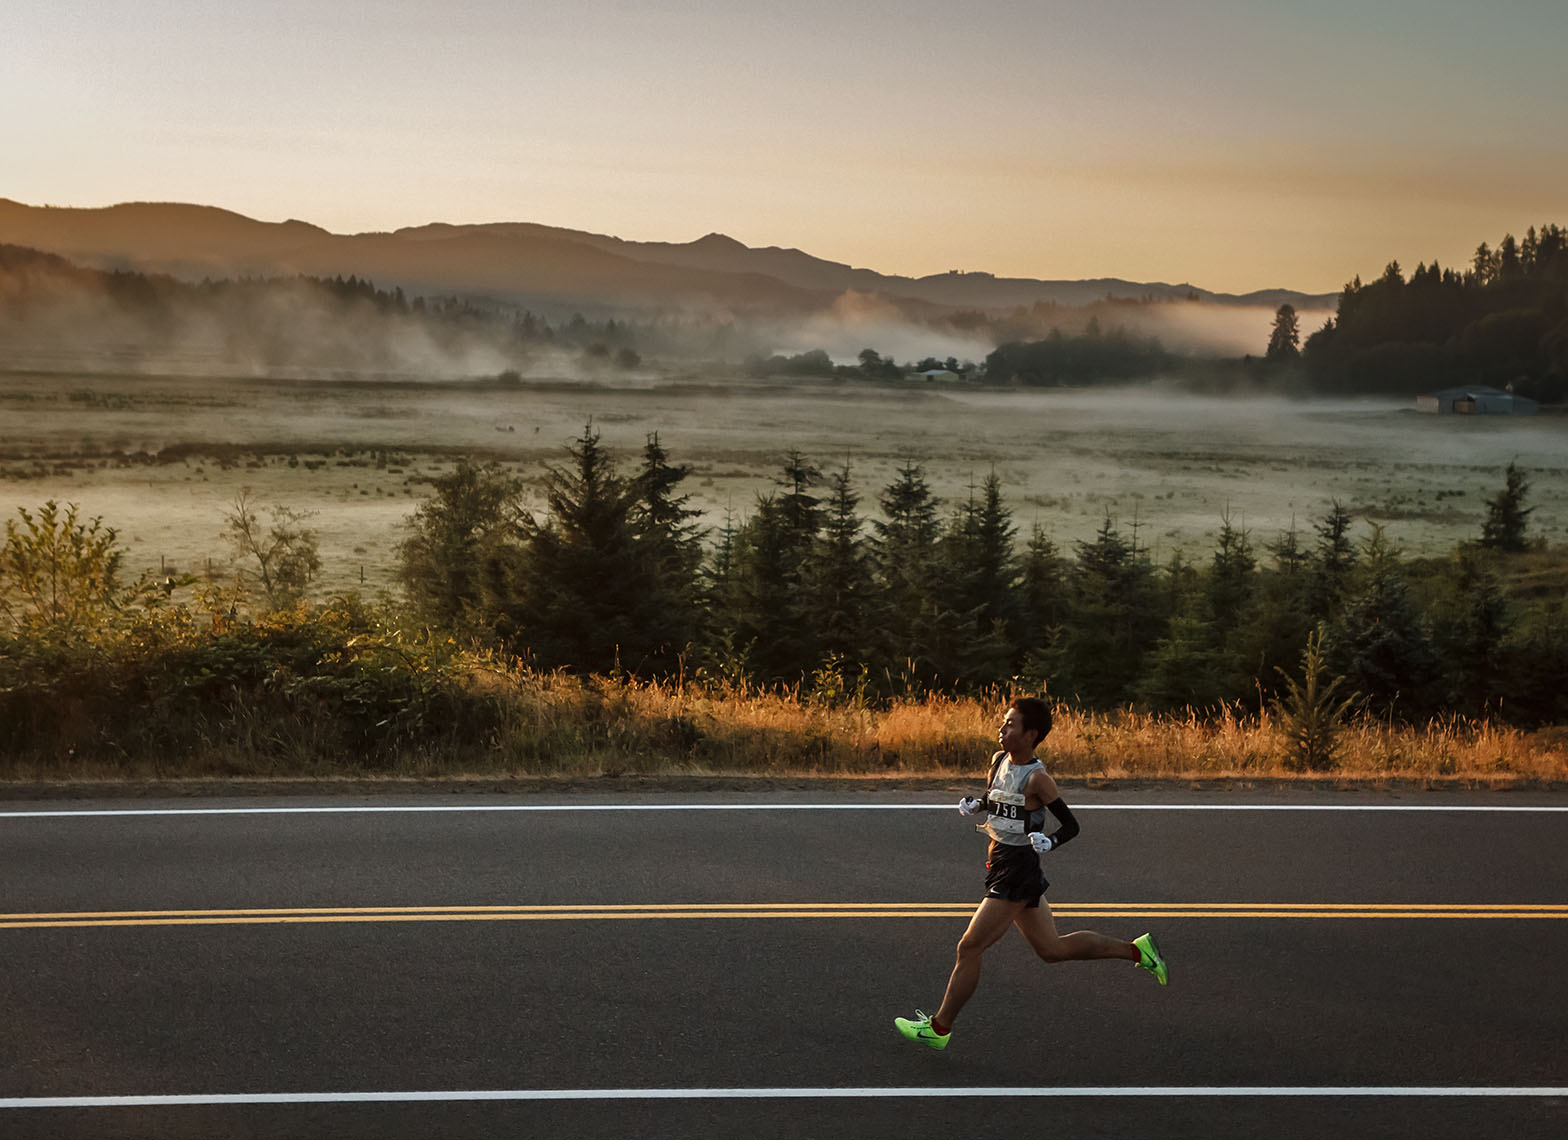 Hood to Coast_Toyo University_Dan Root_25